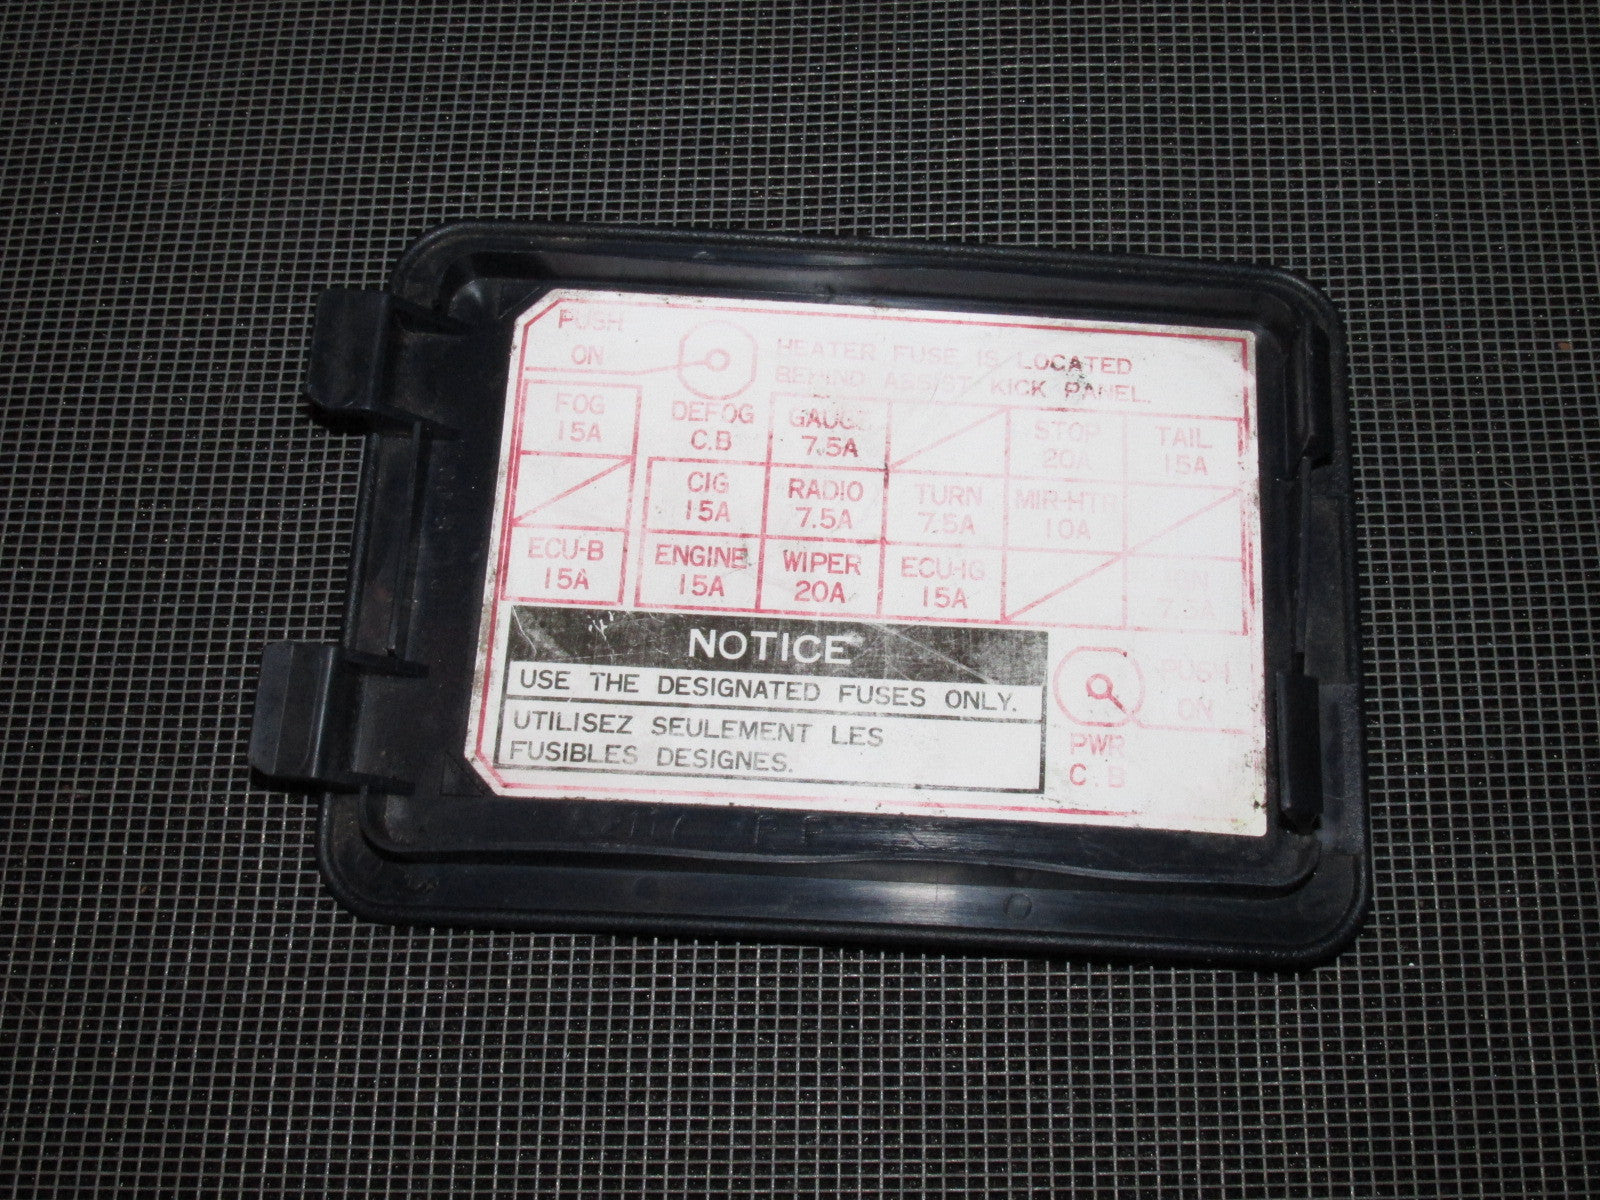 89 Nissan 240sx Fuse Box Diagram Wiring Services S13 Schematics Data U2022 Rh Case Hub Co Gauge Cluster 1989